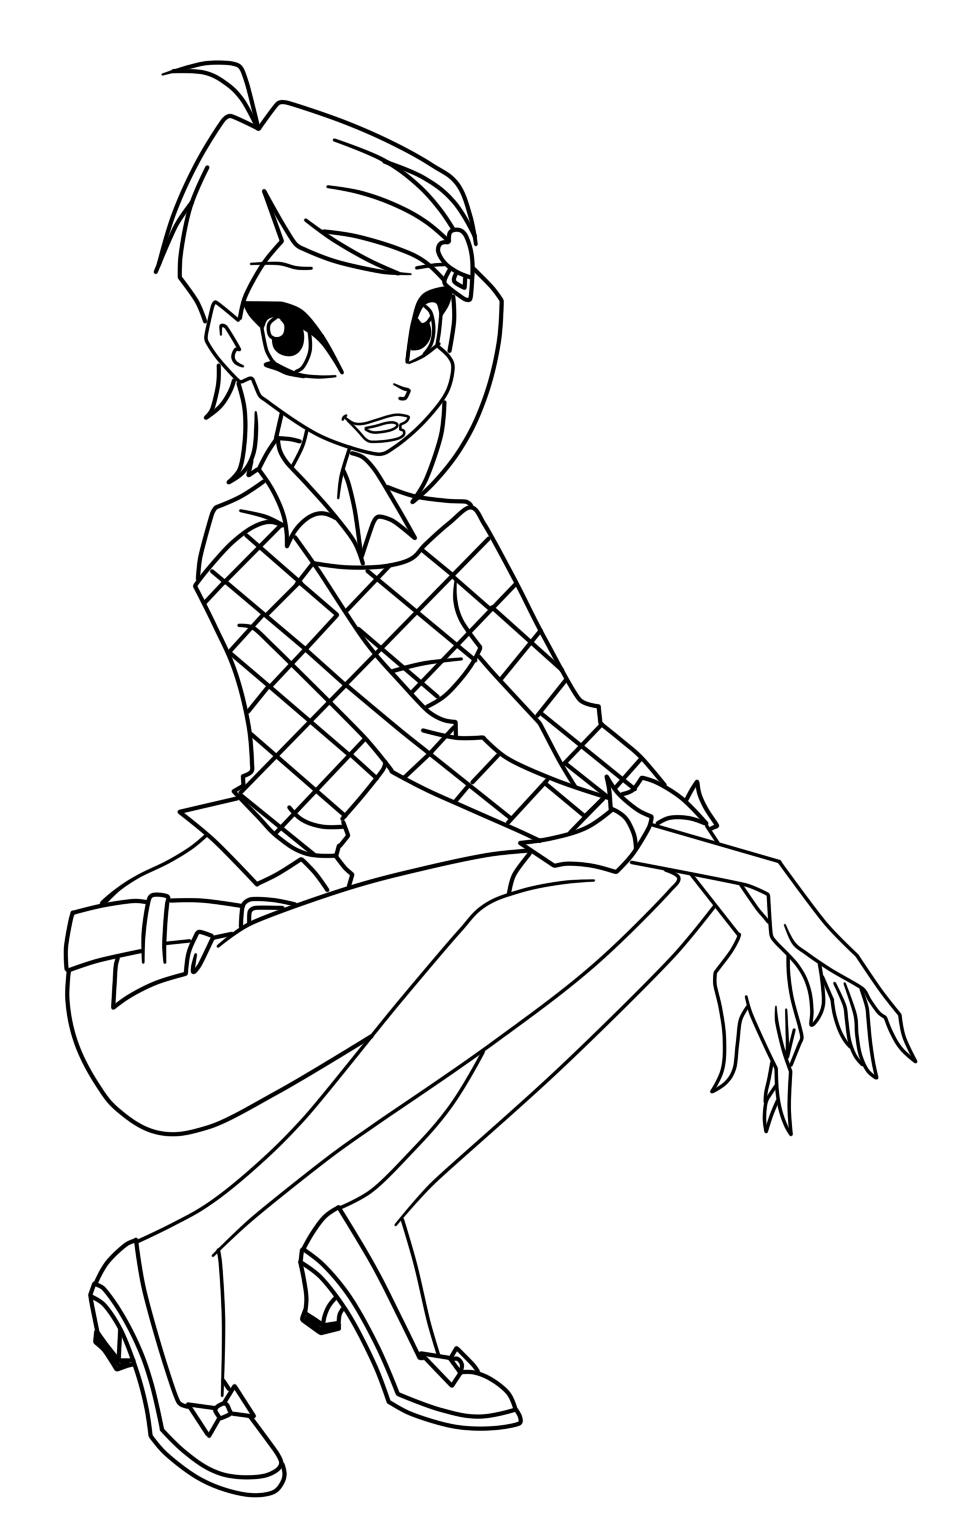 winxs club coloring pages - photo#23